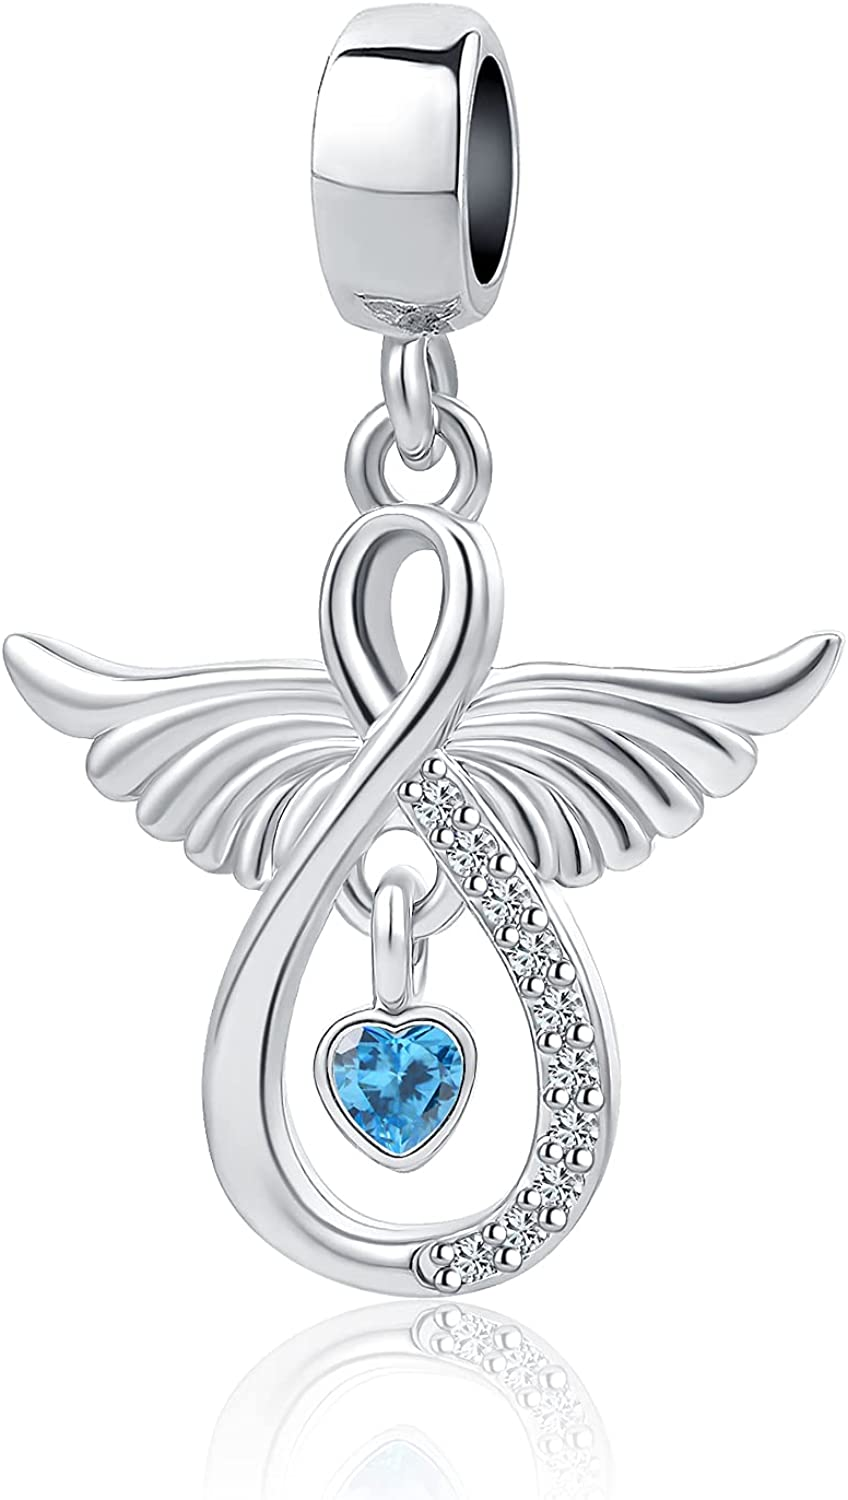 NanMuc Angel Wings Infinity Blue Heart Crystal Women Beads Charms for Charm Necklace Bracelets Girls